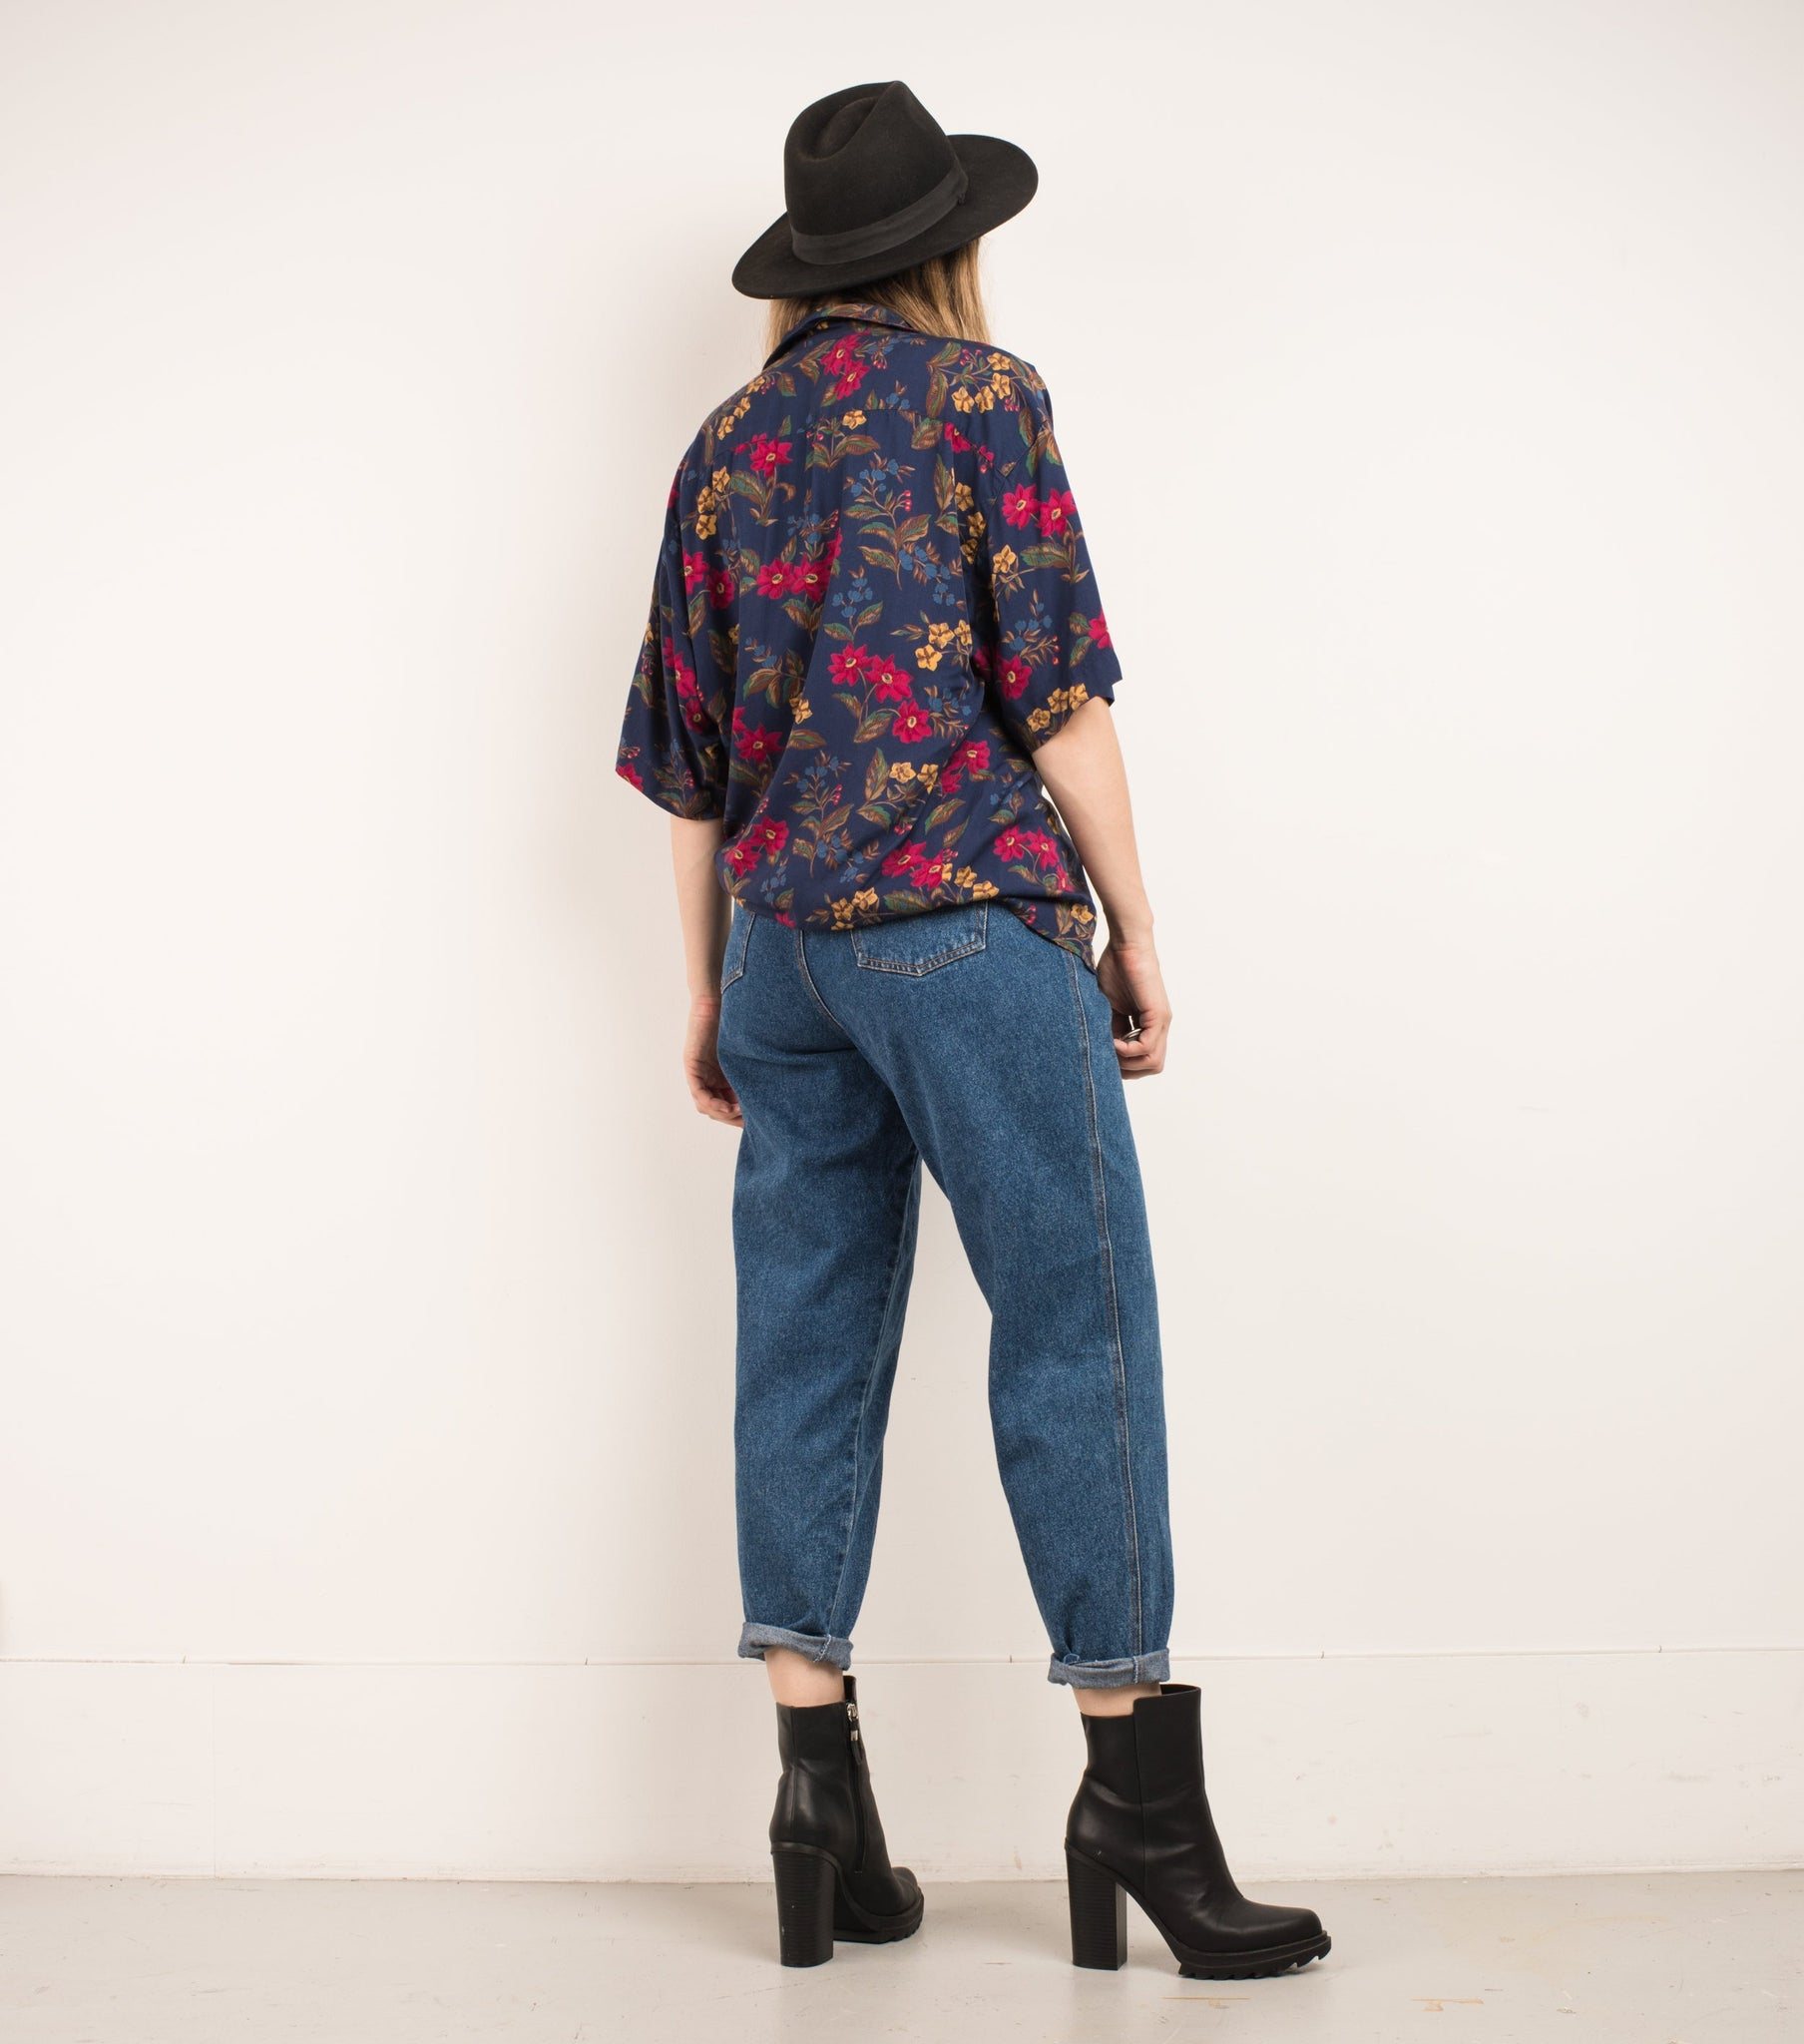 Vintage Oversized Floral Boyfriend Shirt / S/M - Closed Caption